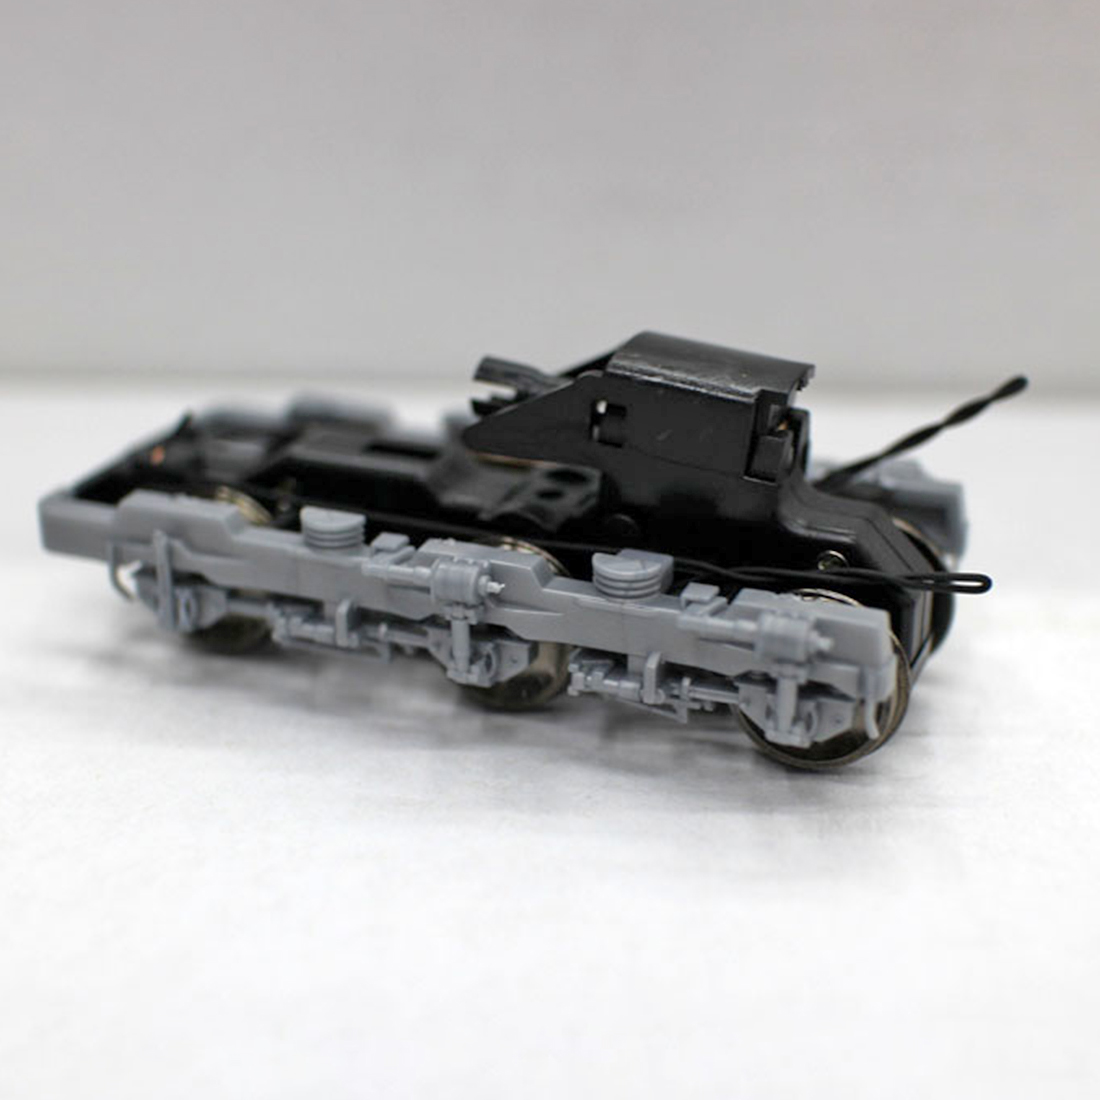 2.8 X 6.8cm Chassis Bogie For 1:87 HO Scale Train Model (It Is Not Manufactured And Sold By Bachmann And Has Nothing With It)